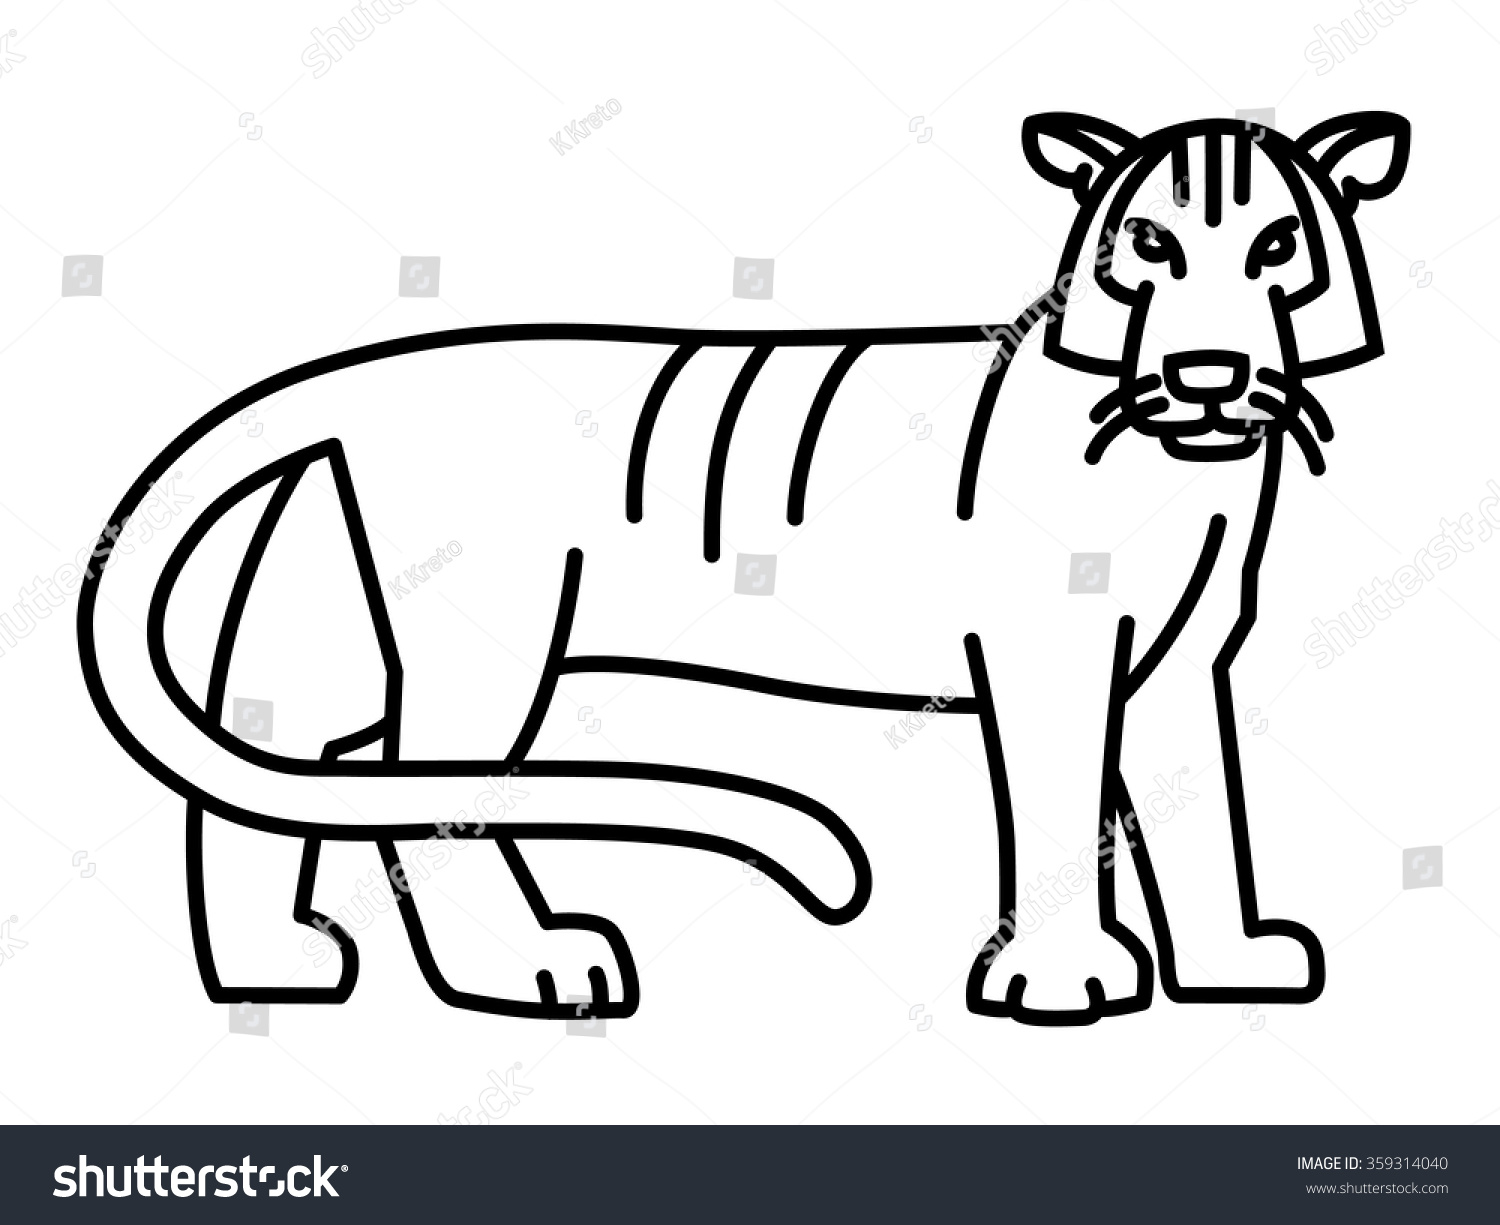 Tiger Line Drawing Easy : Tiger simple geometric line art illustration stock vector